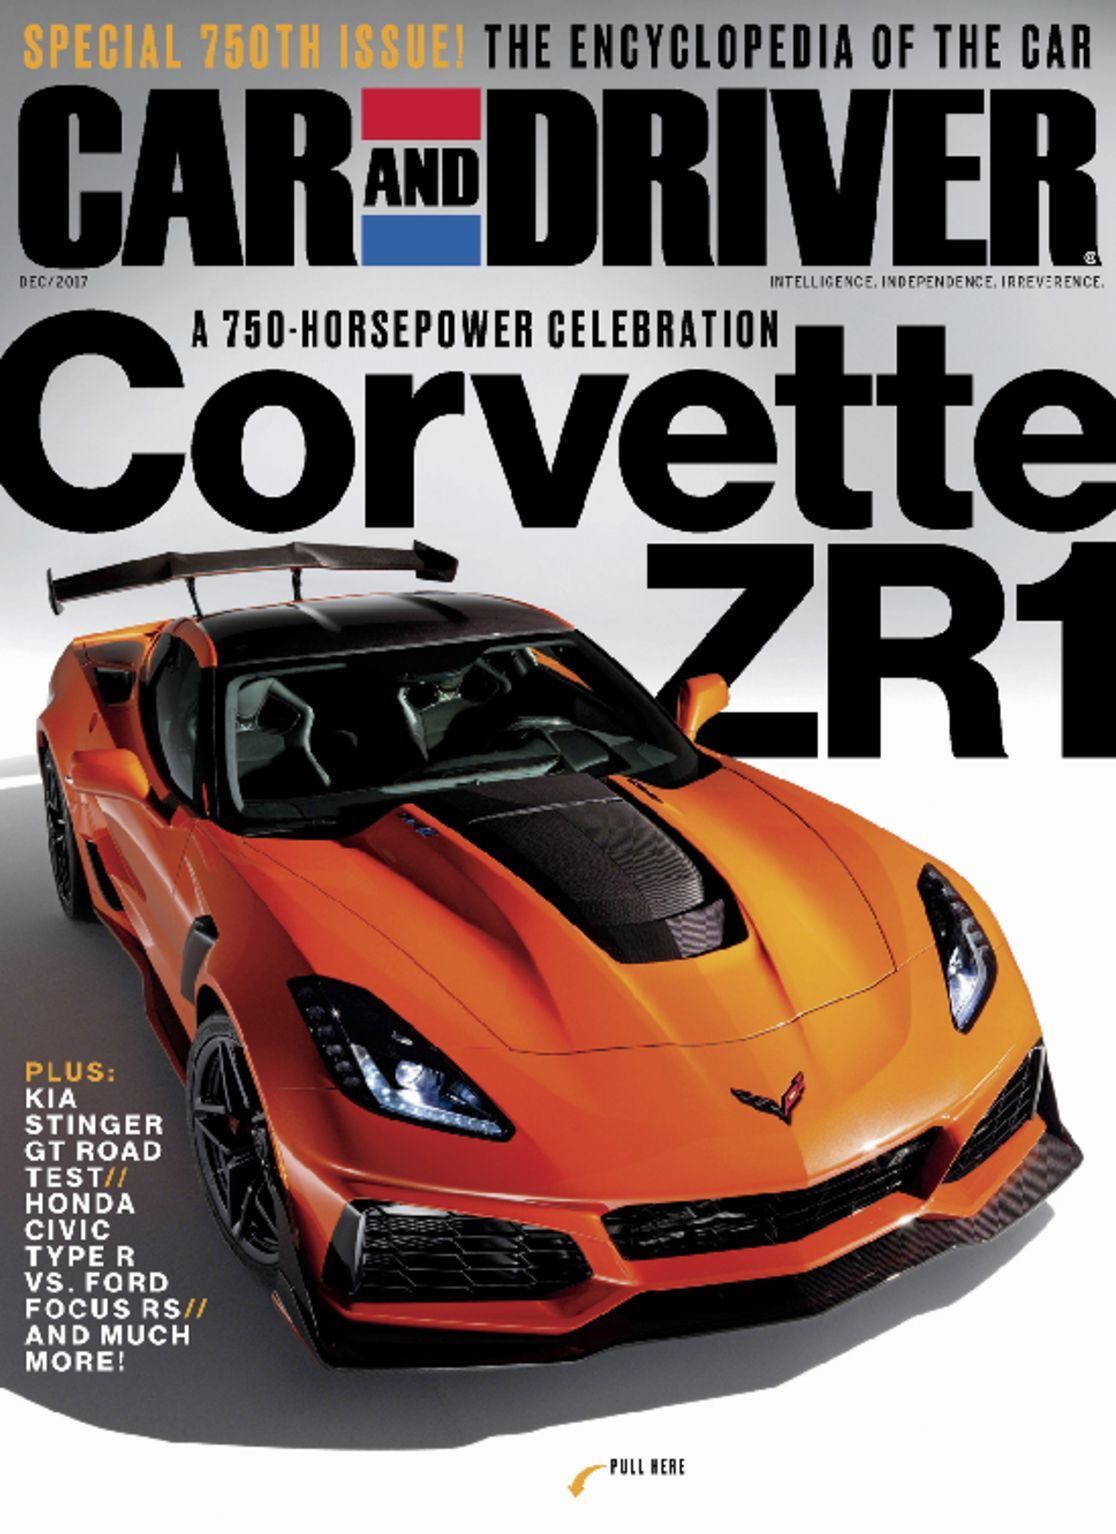 Car and driver magazine intelligence independence irreverence discountmags com